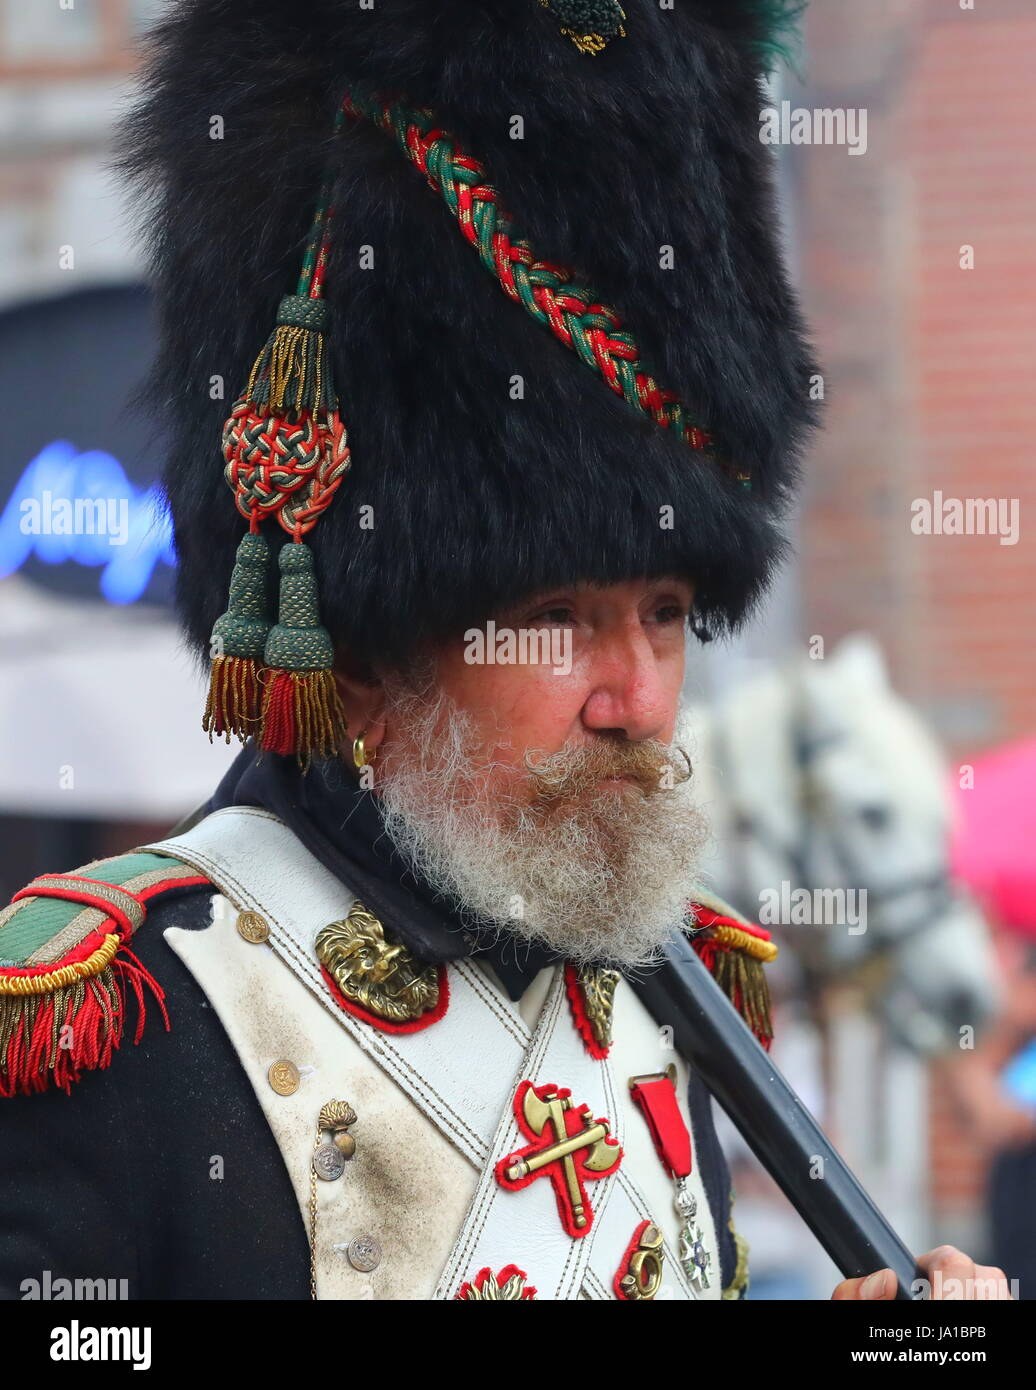 Ligny, Belgium. 3rd June, 2017. A participant takes part in the re-enactment of the Battle of Ligny, in Ligny, Belgium, - Stock Image